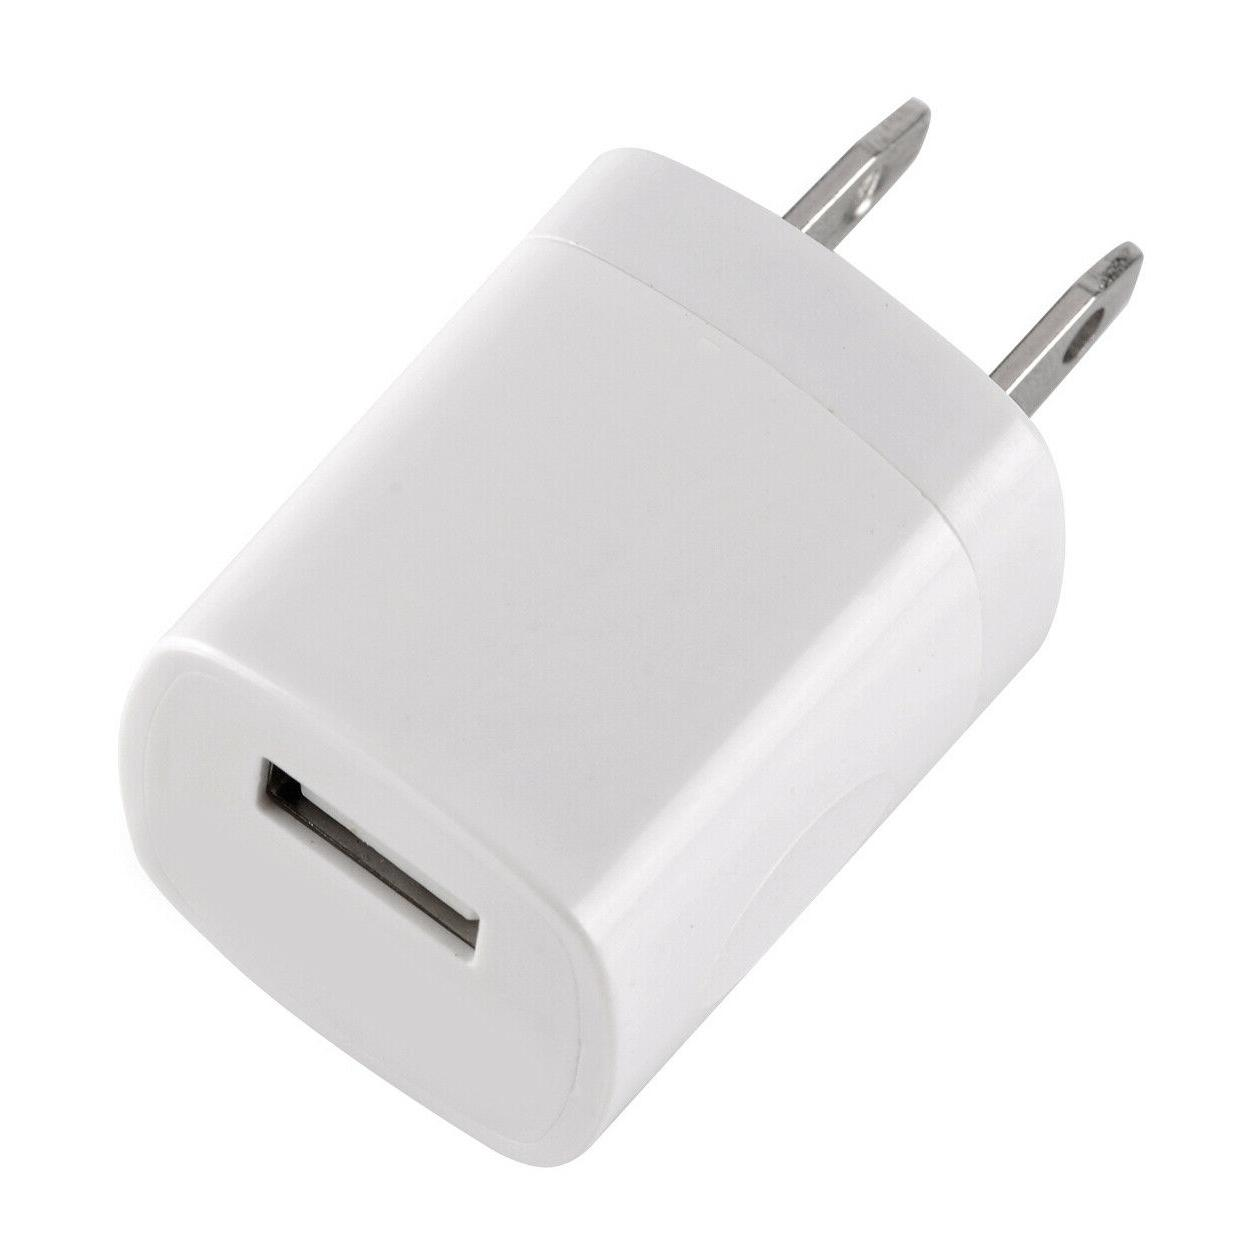 2x White Power Adapter AC Home Wall US FOR iPhone 6 7 8